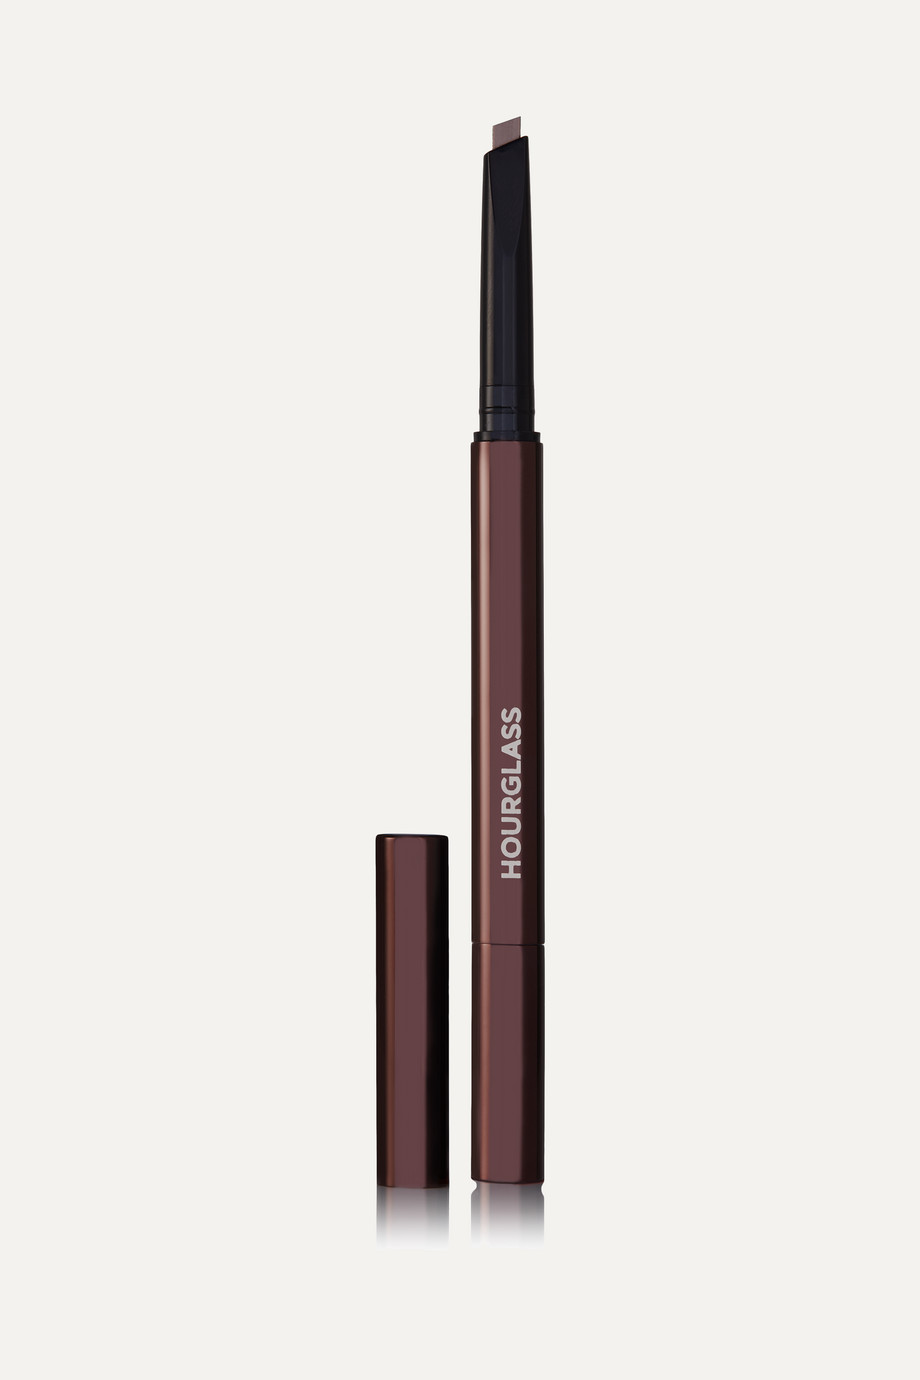 Hourglass Arch Brow Sculpting Pencil - Soft Brunette